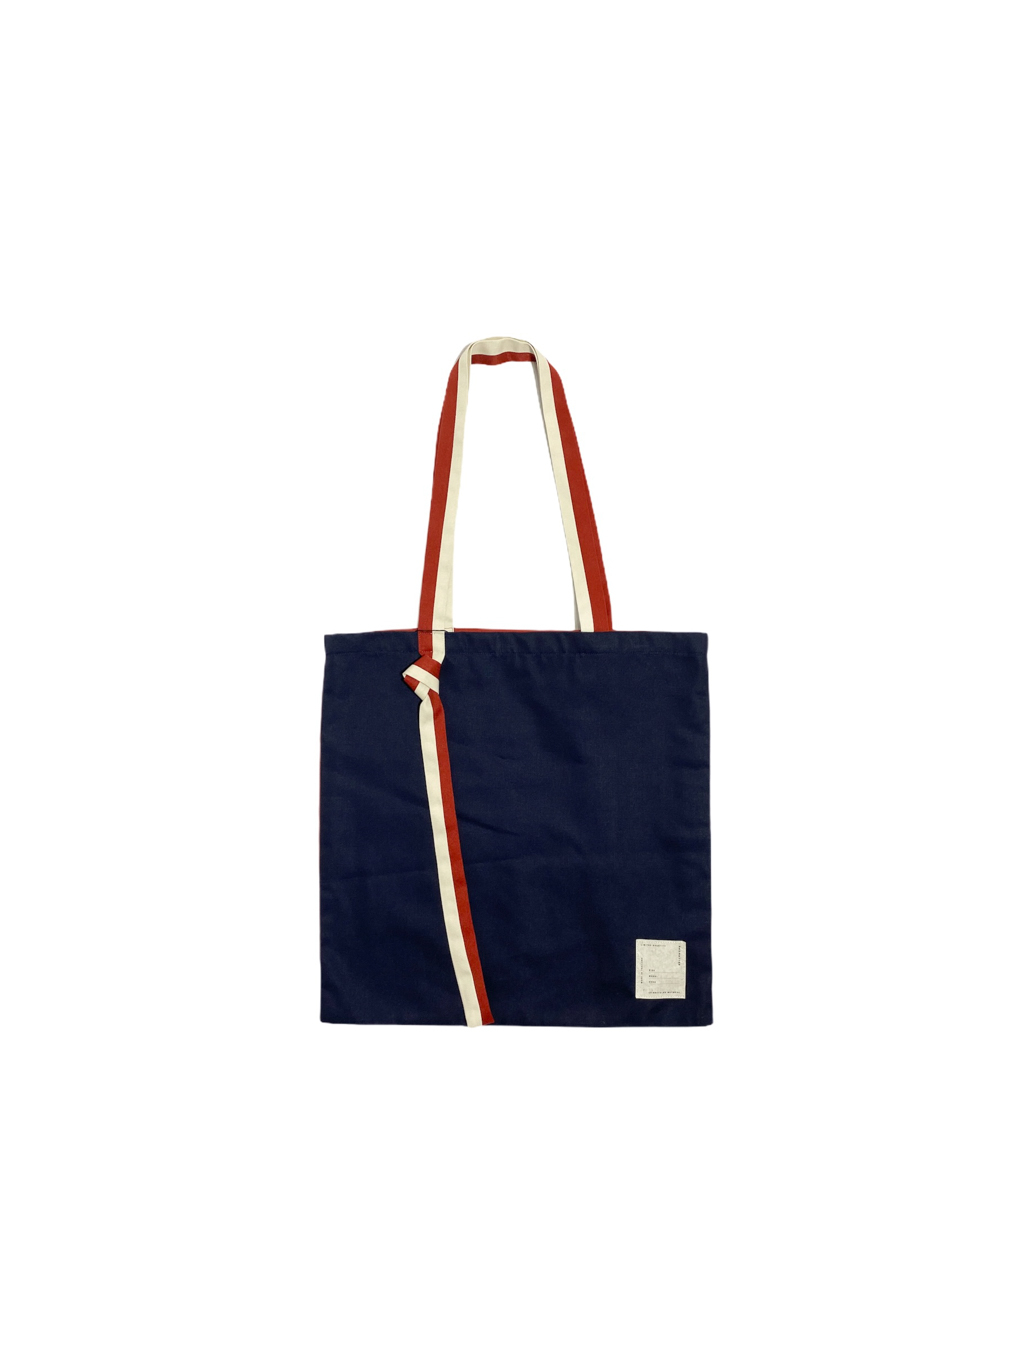 Why Knot Tote Bag (Navy)